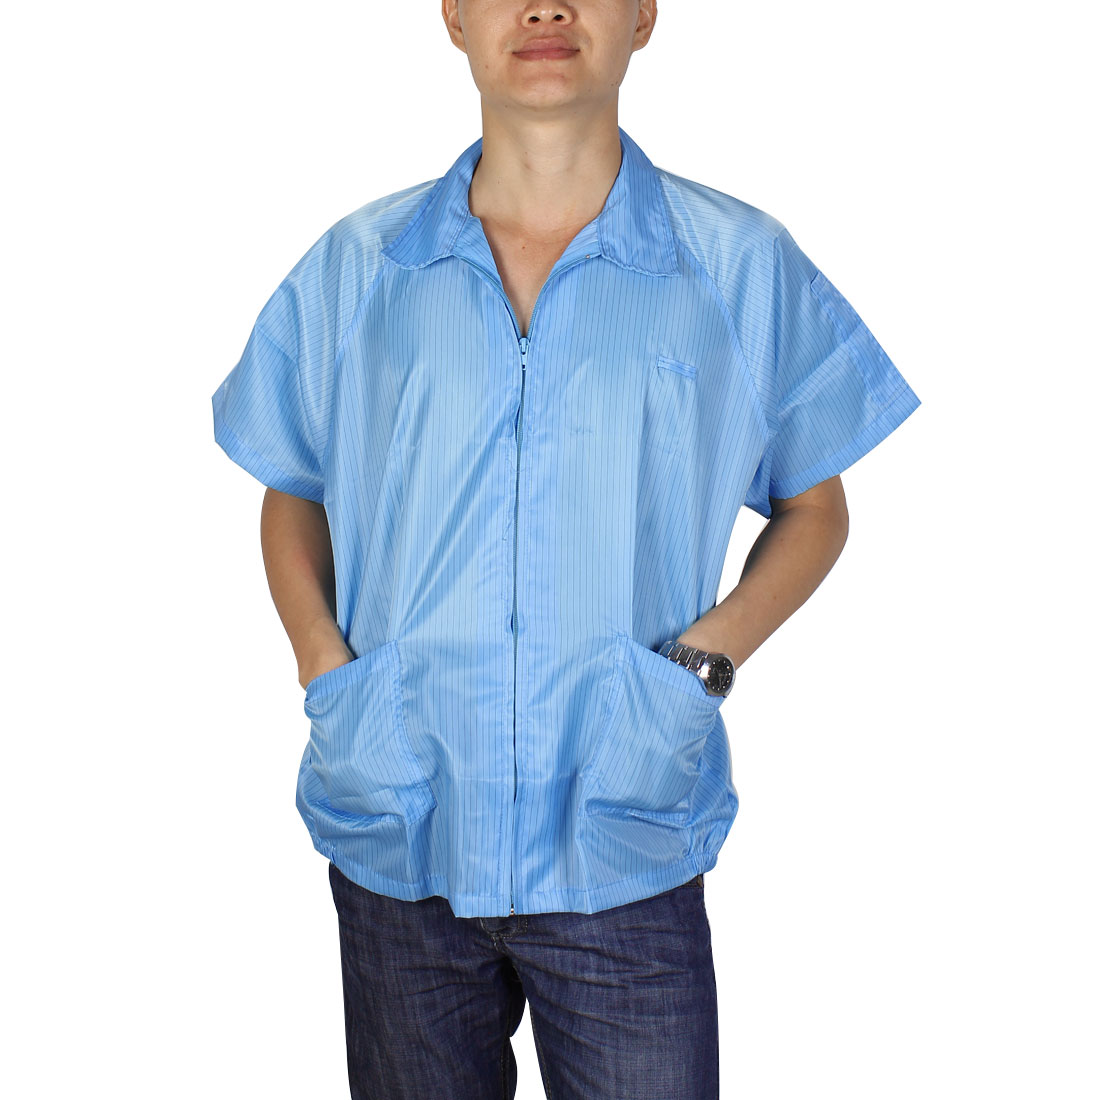 Unisex Short Sleeve Stripes Pattern Clean Room Anti Static Jacket Shirt Coat Blue X Large